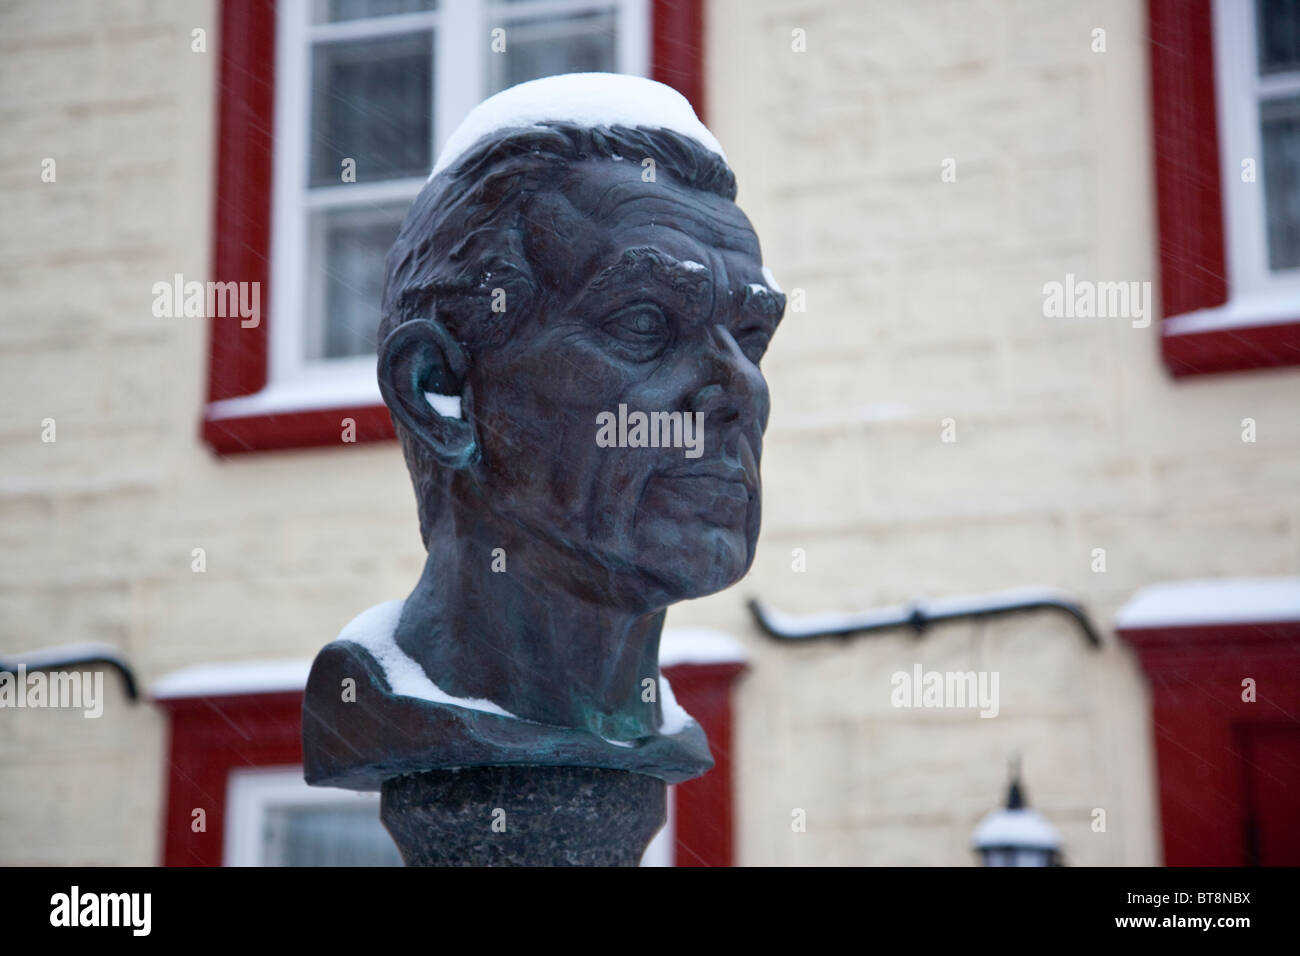 Bust of Le Peintre Jean Paul Lemieux in Old Quebec City, Canada - Stock Image